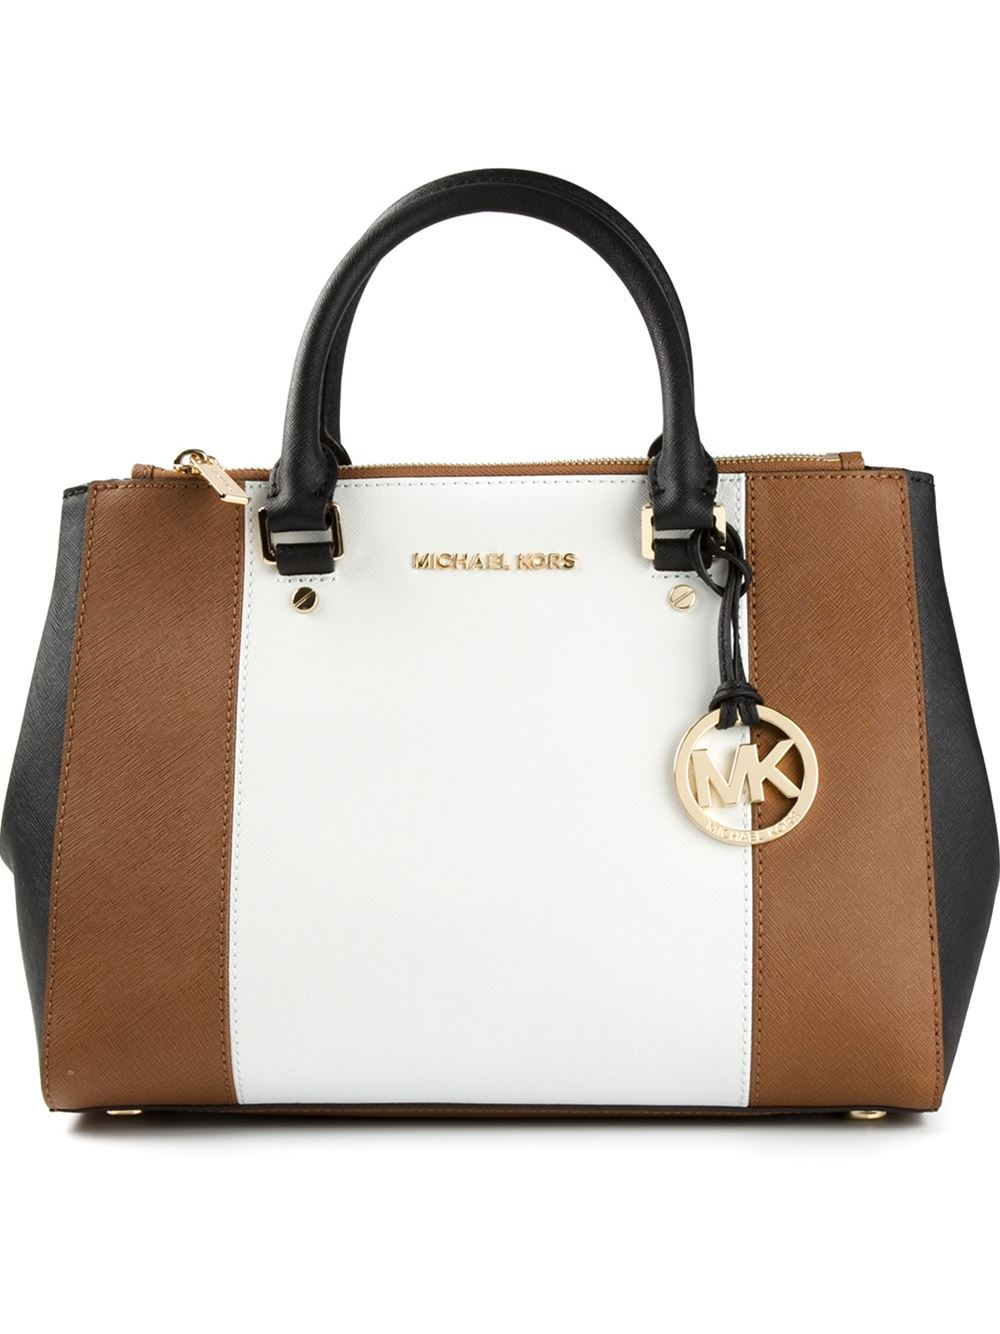 1fd7aff90e57 Lyst - MICHAEL Michael Kors Jet Set Travel Tote in Brown